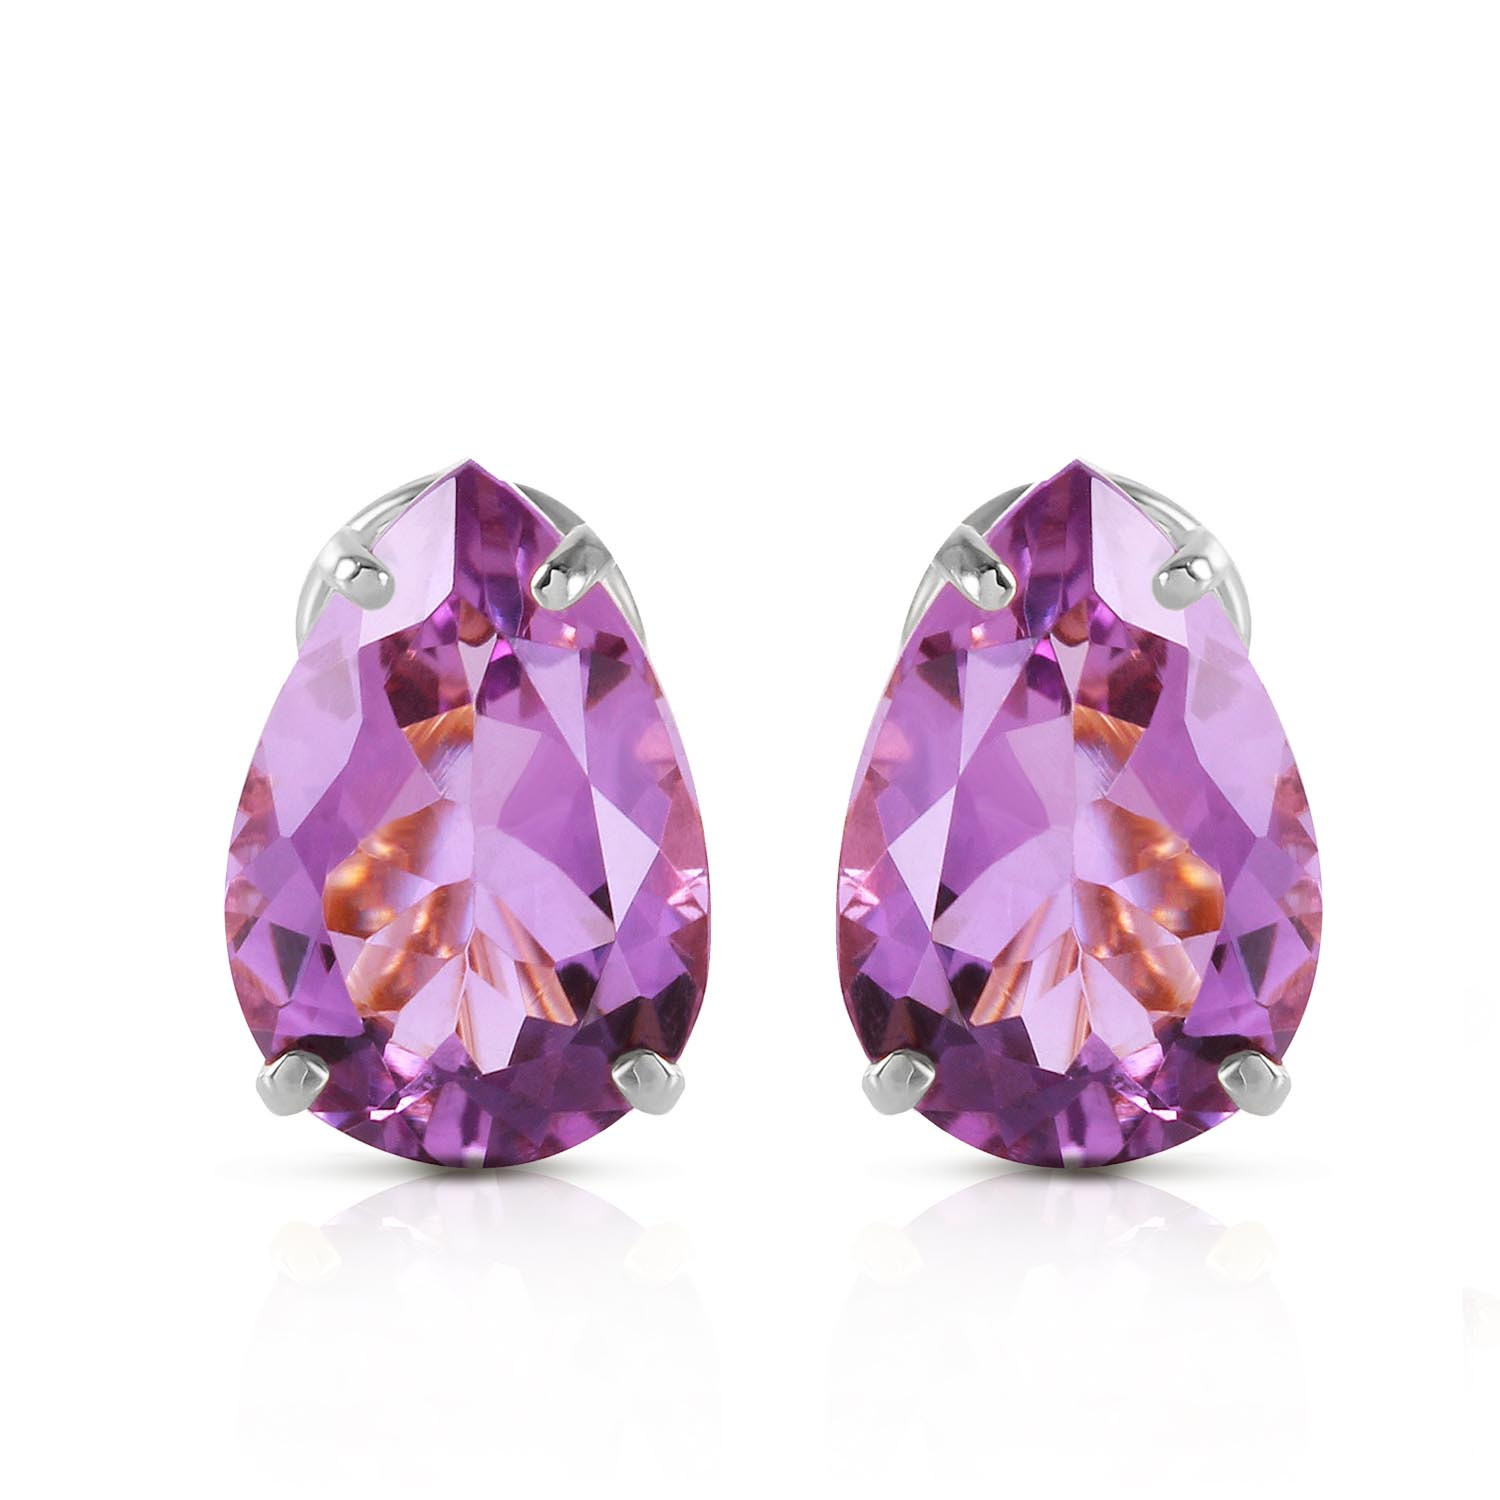 Amethyst Droplet Stud Earrings 10.0ctw in 9ct White Gold